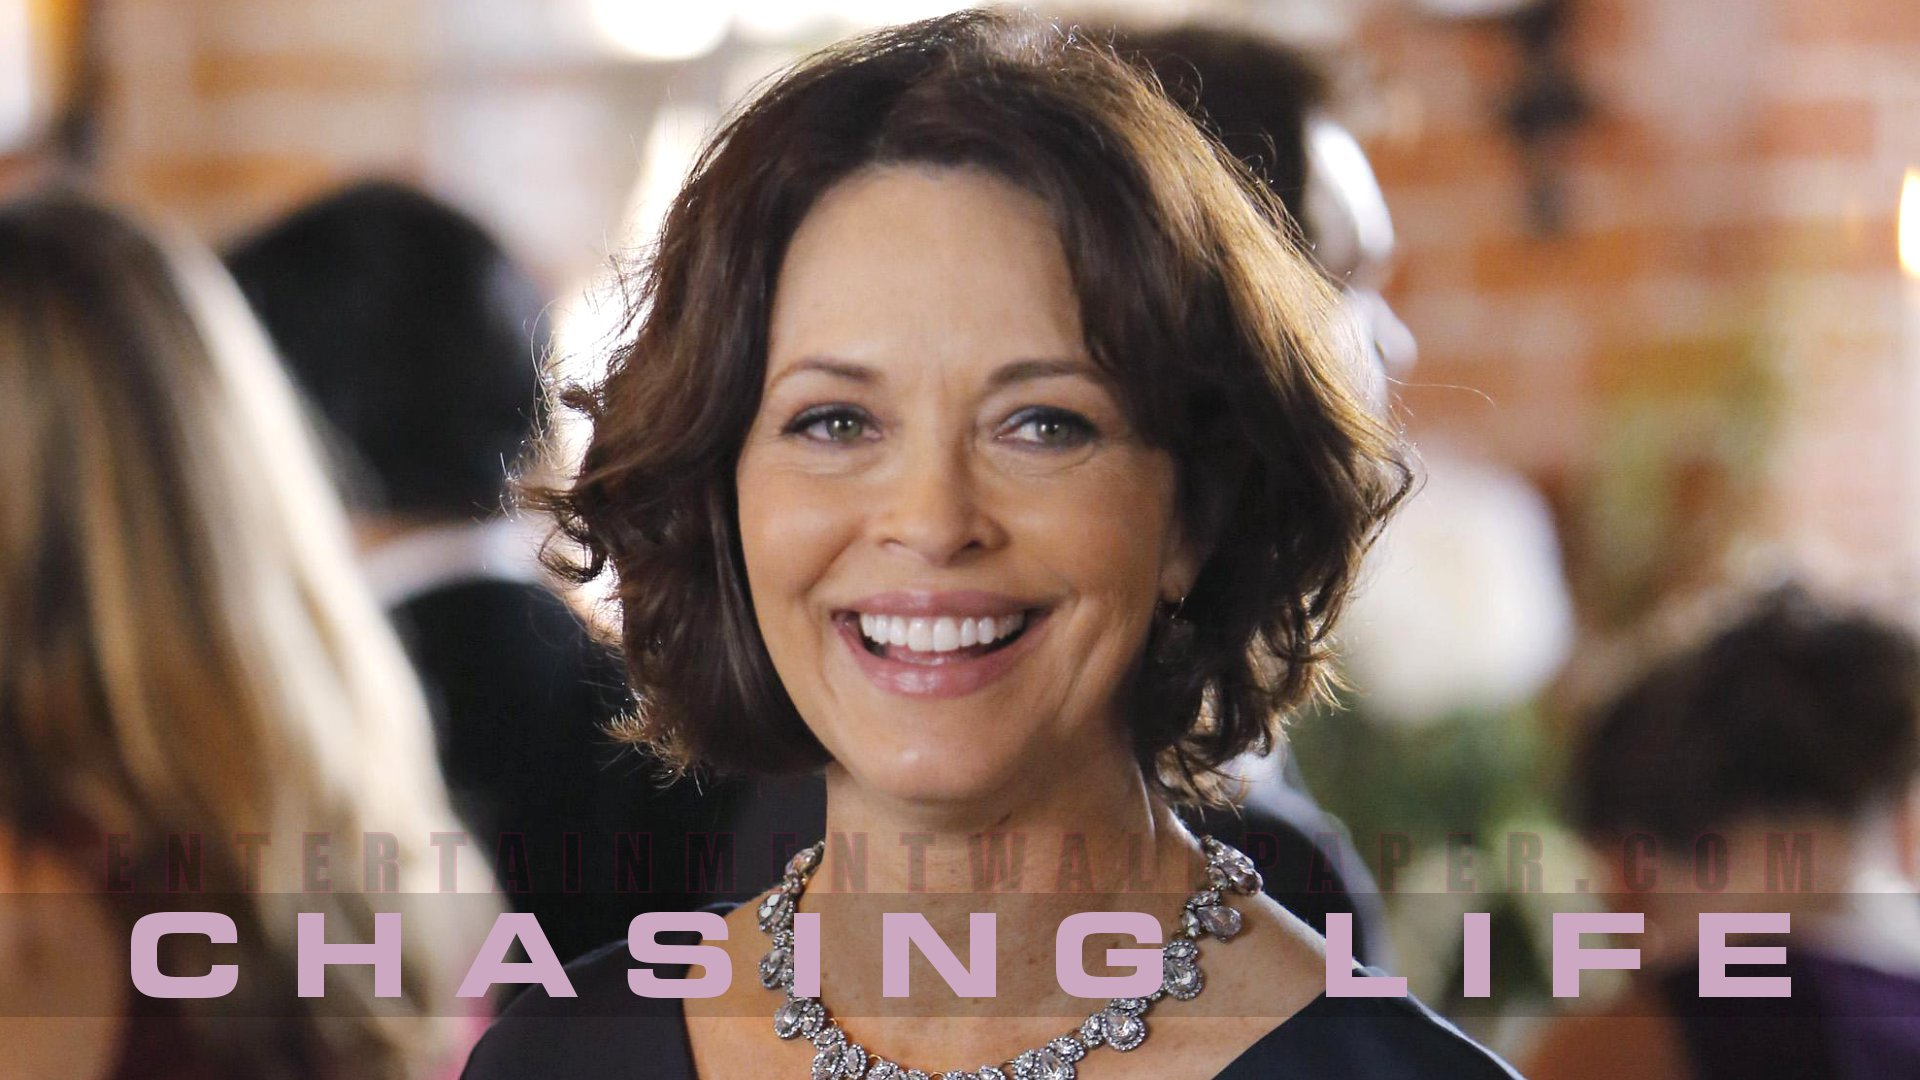 Chasing Life Wallpaper